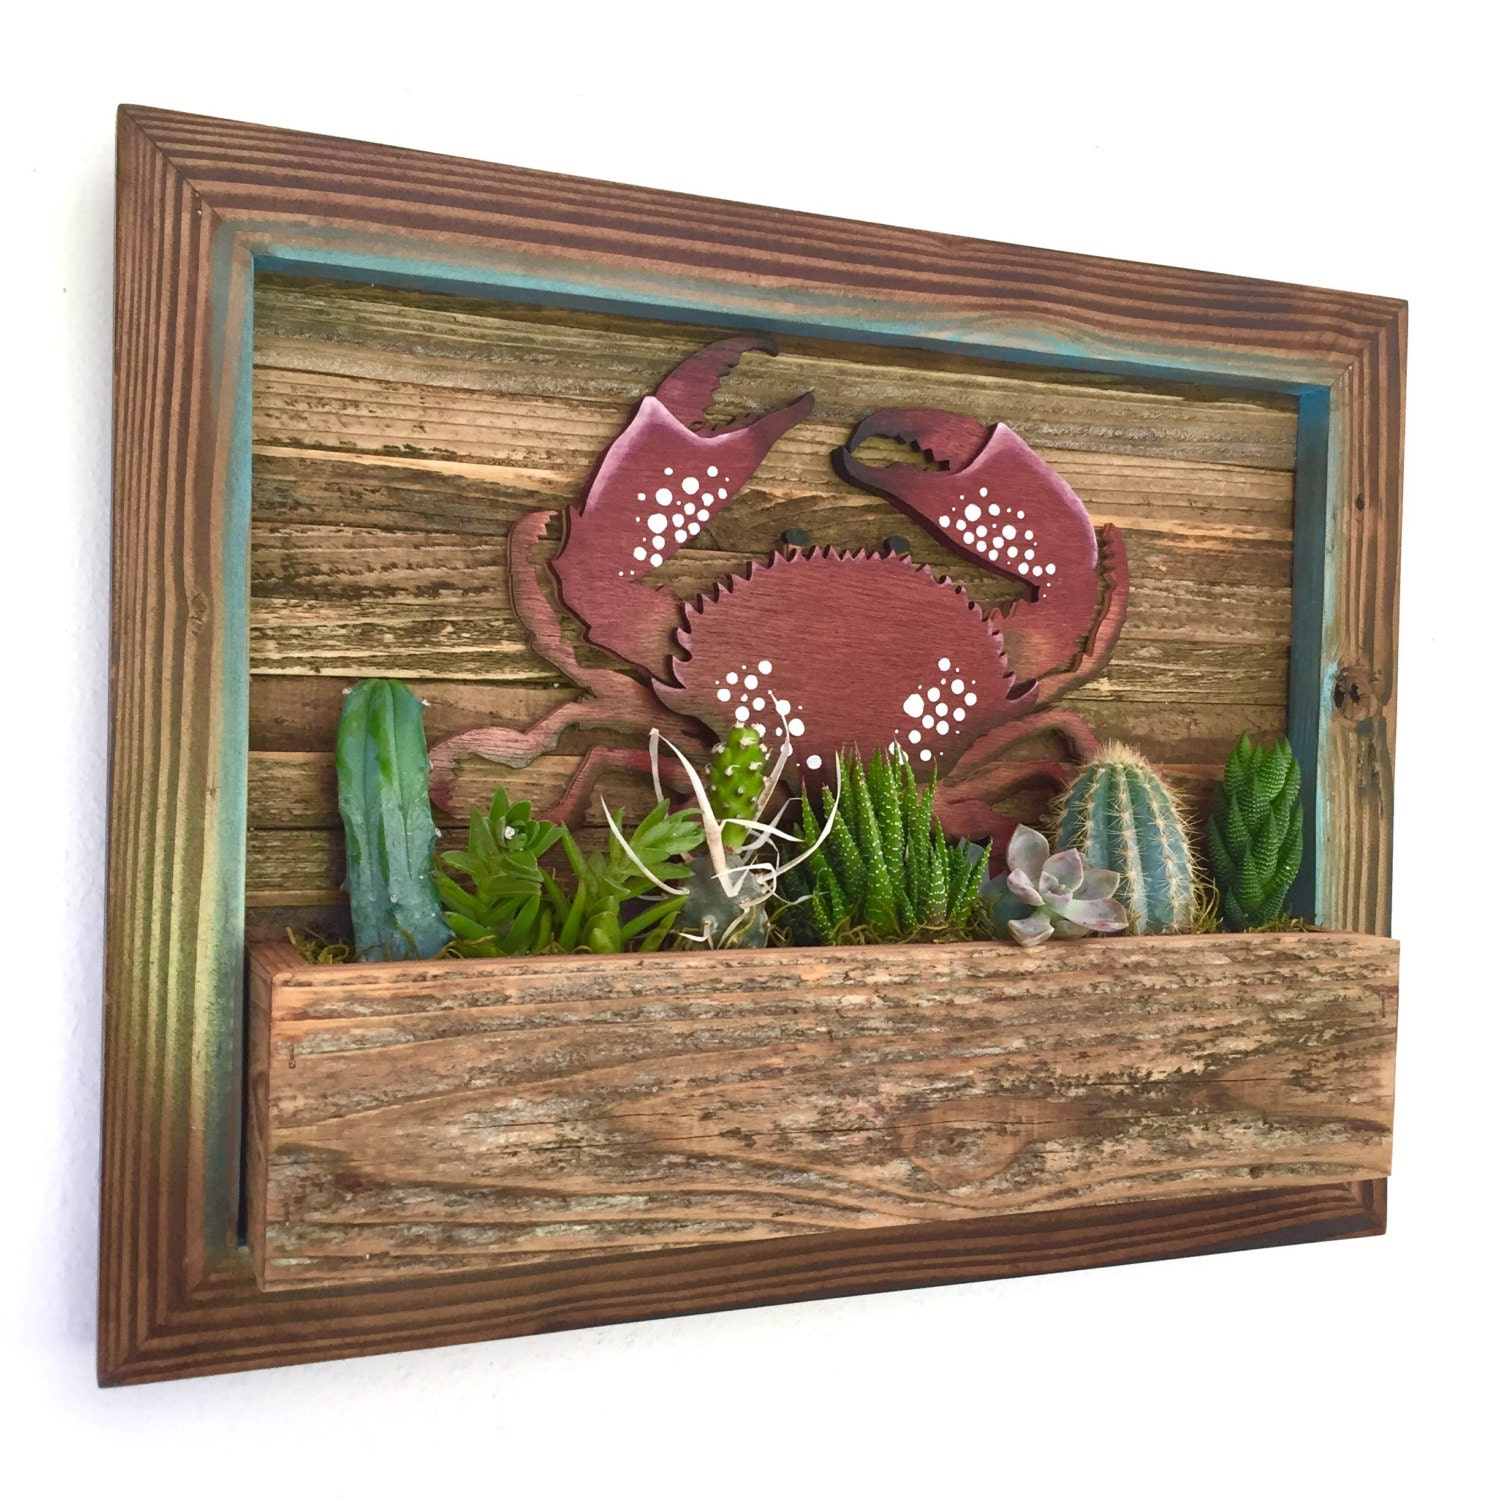 FATHERS DAY GIFT: Crab Vertical Garden Vertical Planter